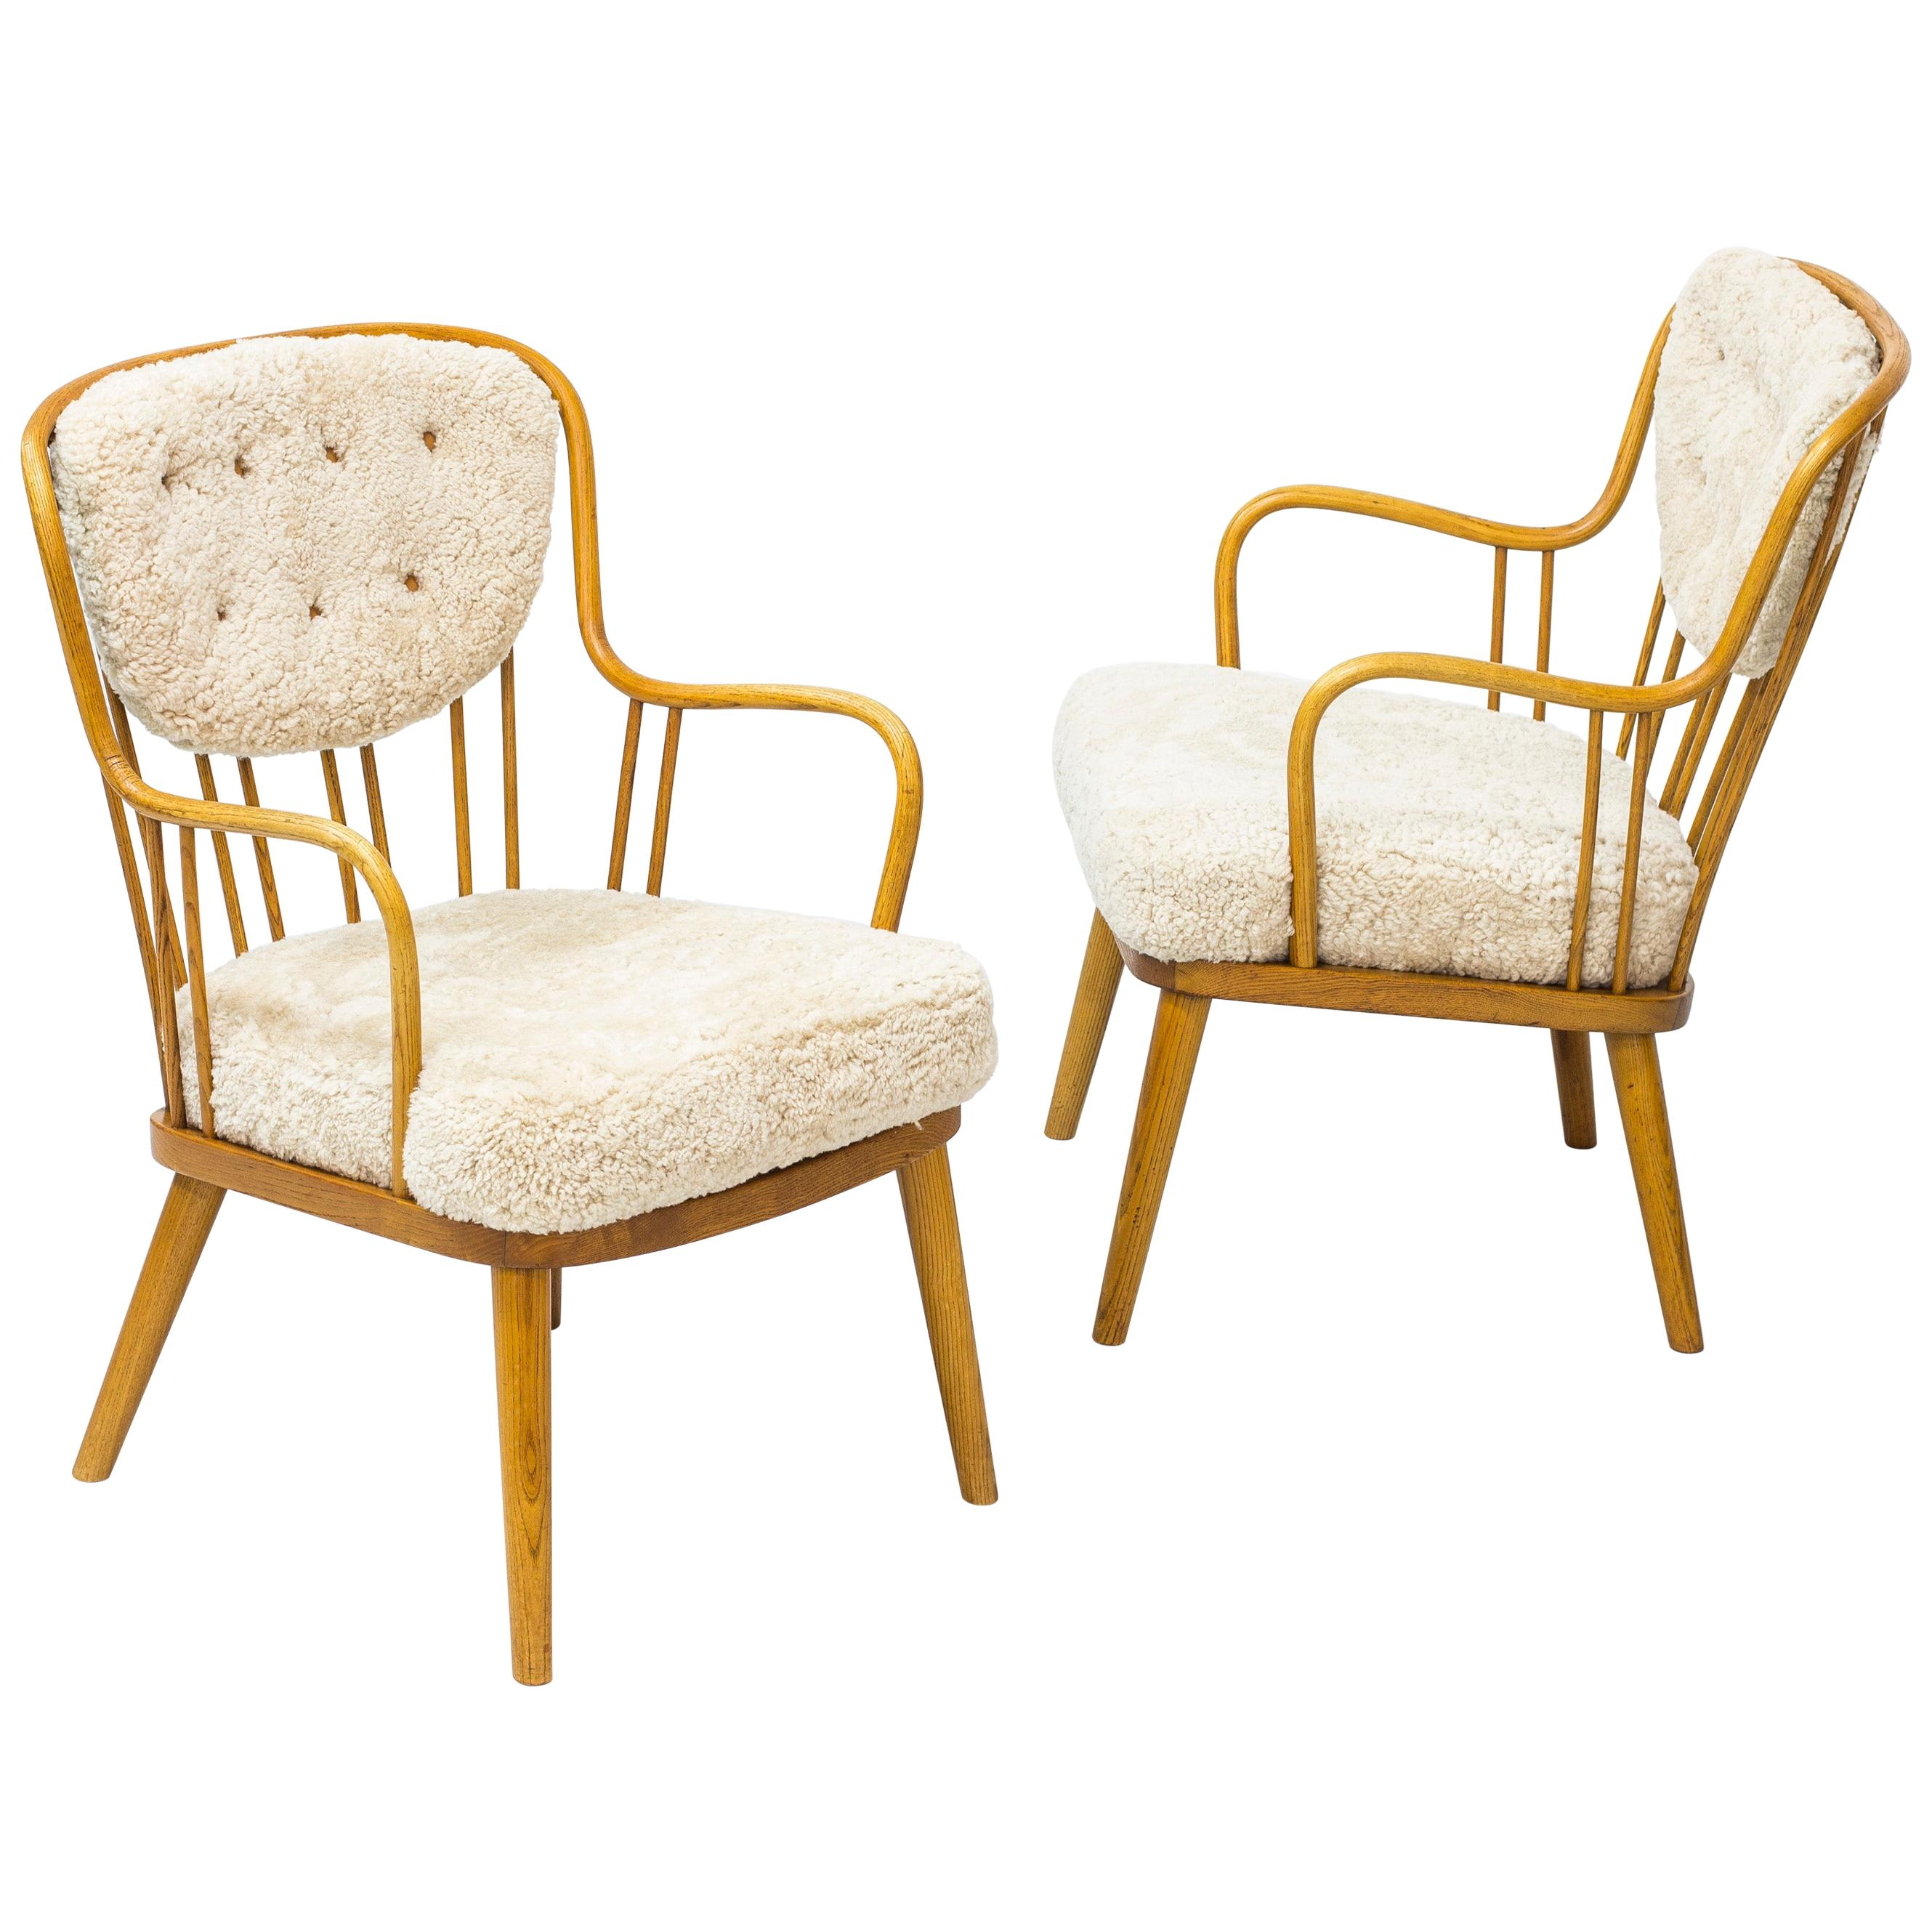 Pleasant Antique And Vintage Chairs Sofas And Seating 87 018 For Creativecarmelina Interior Chair Design Creativecarmelinacom